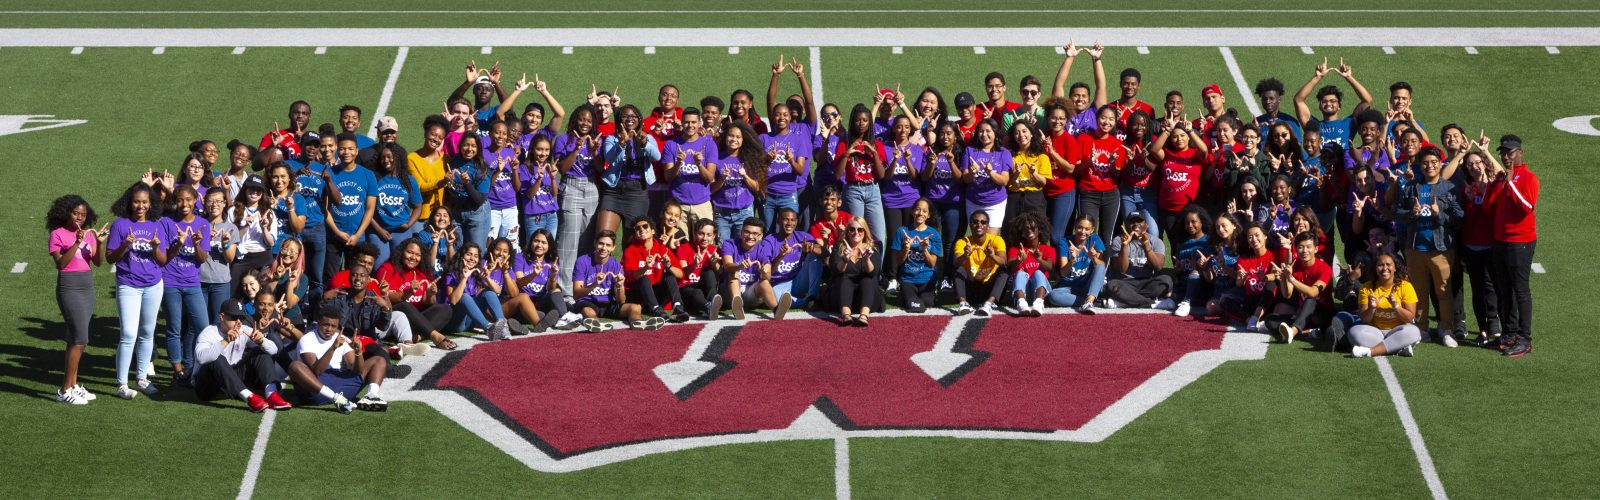 Group photo of Posse Scholars at Camp Randall on the 50 yard line.